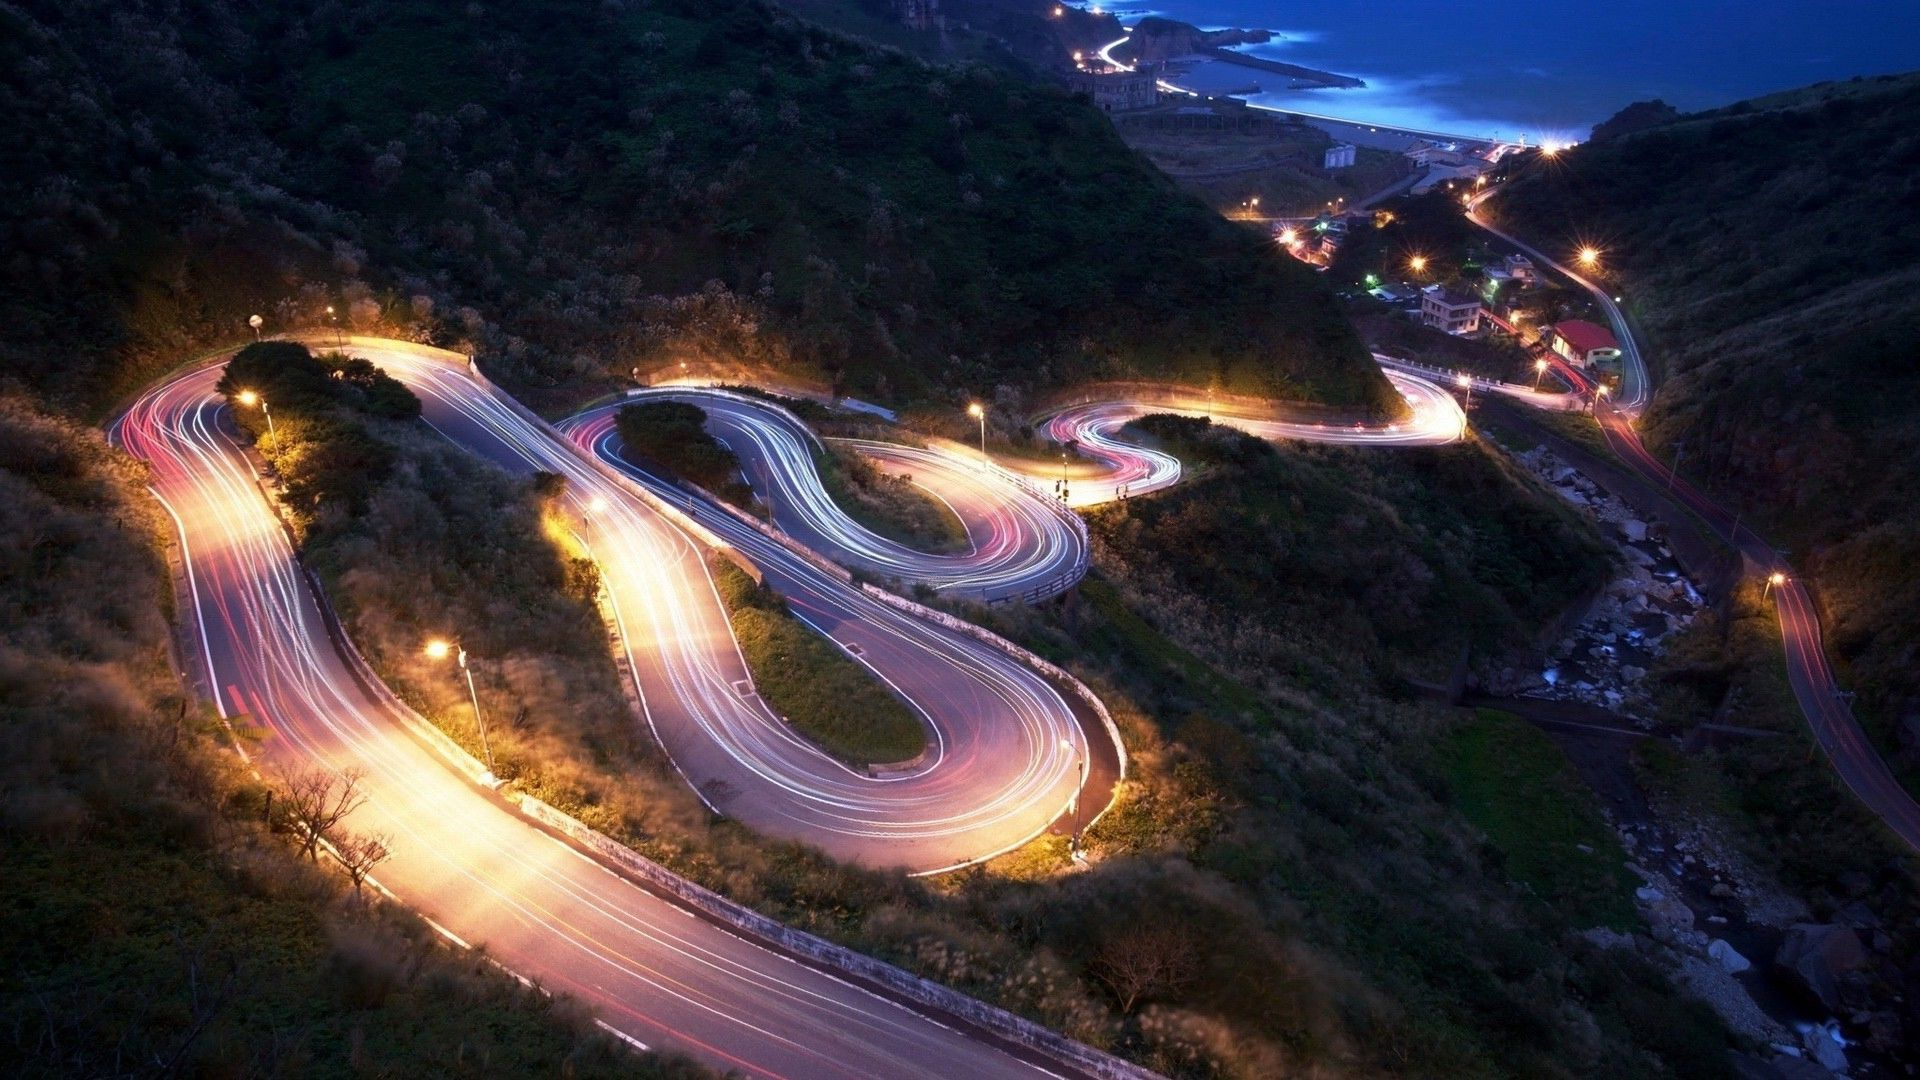 cityscapes streets cars Drift roads photograph / 1920x1080